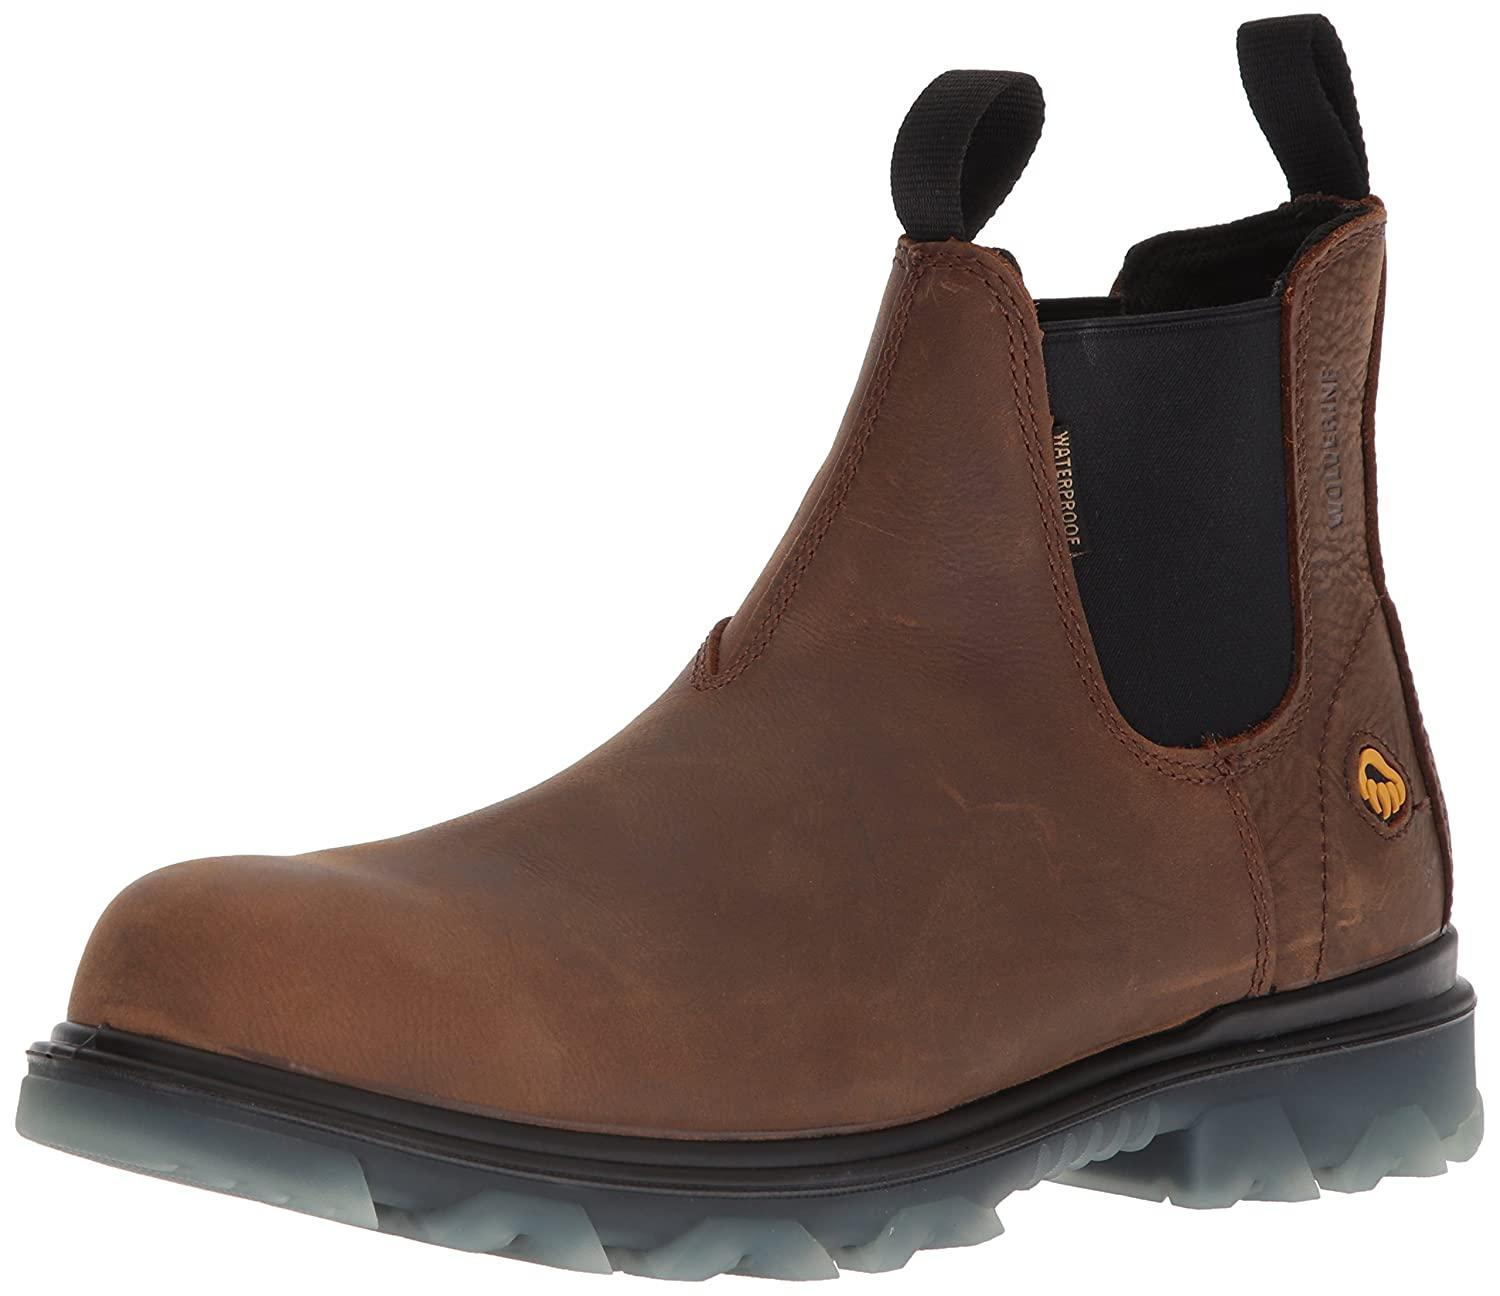 9c3175a65fa Wolverine Men's I-90 Waterproof Composite-Toe Romeo Slip-on Construction  Boot